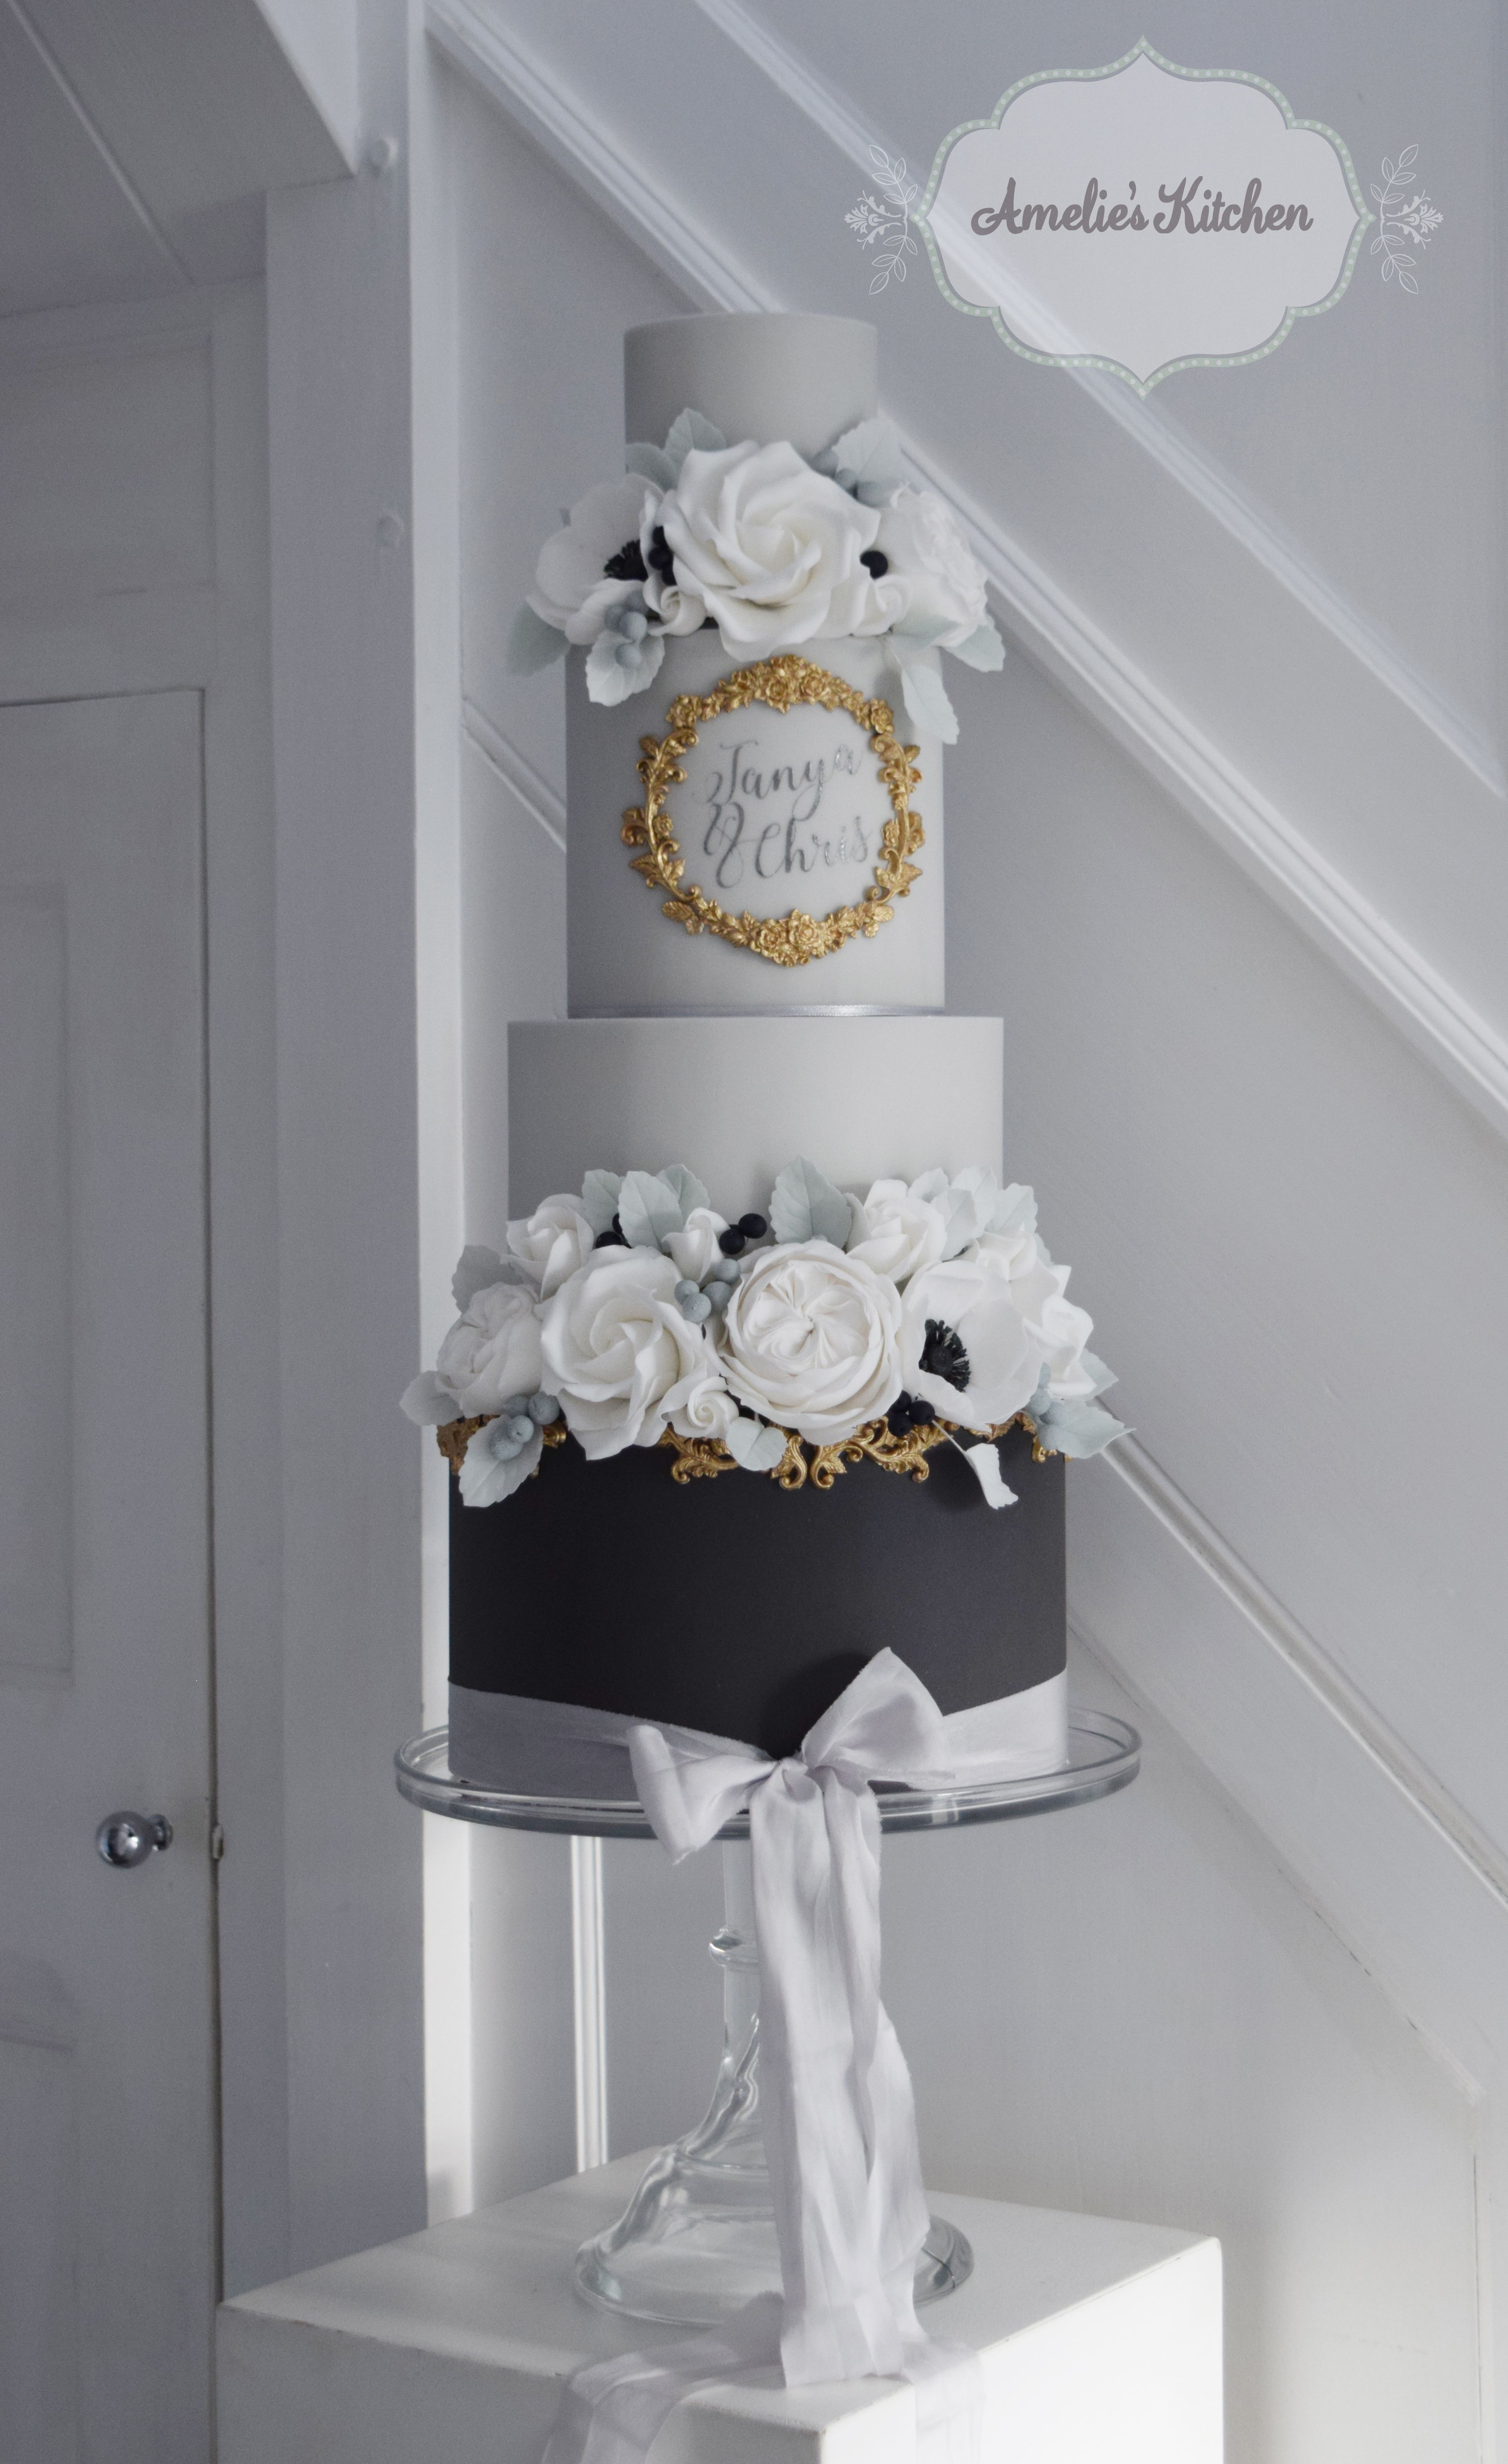 Charcoal grey and gold cake design trimmed with hand dyed kate